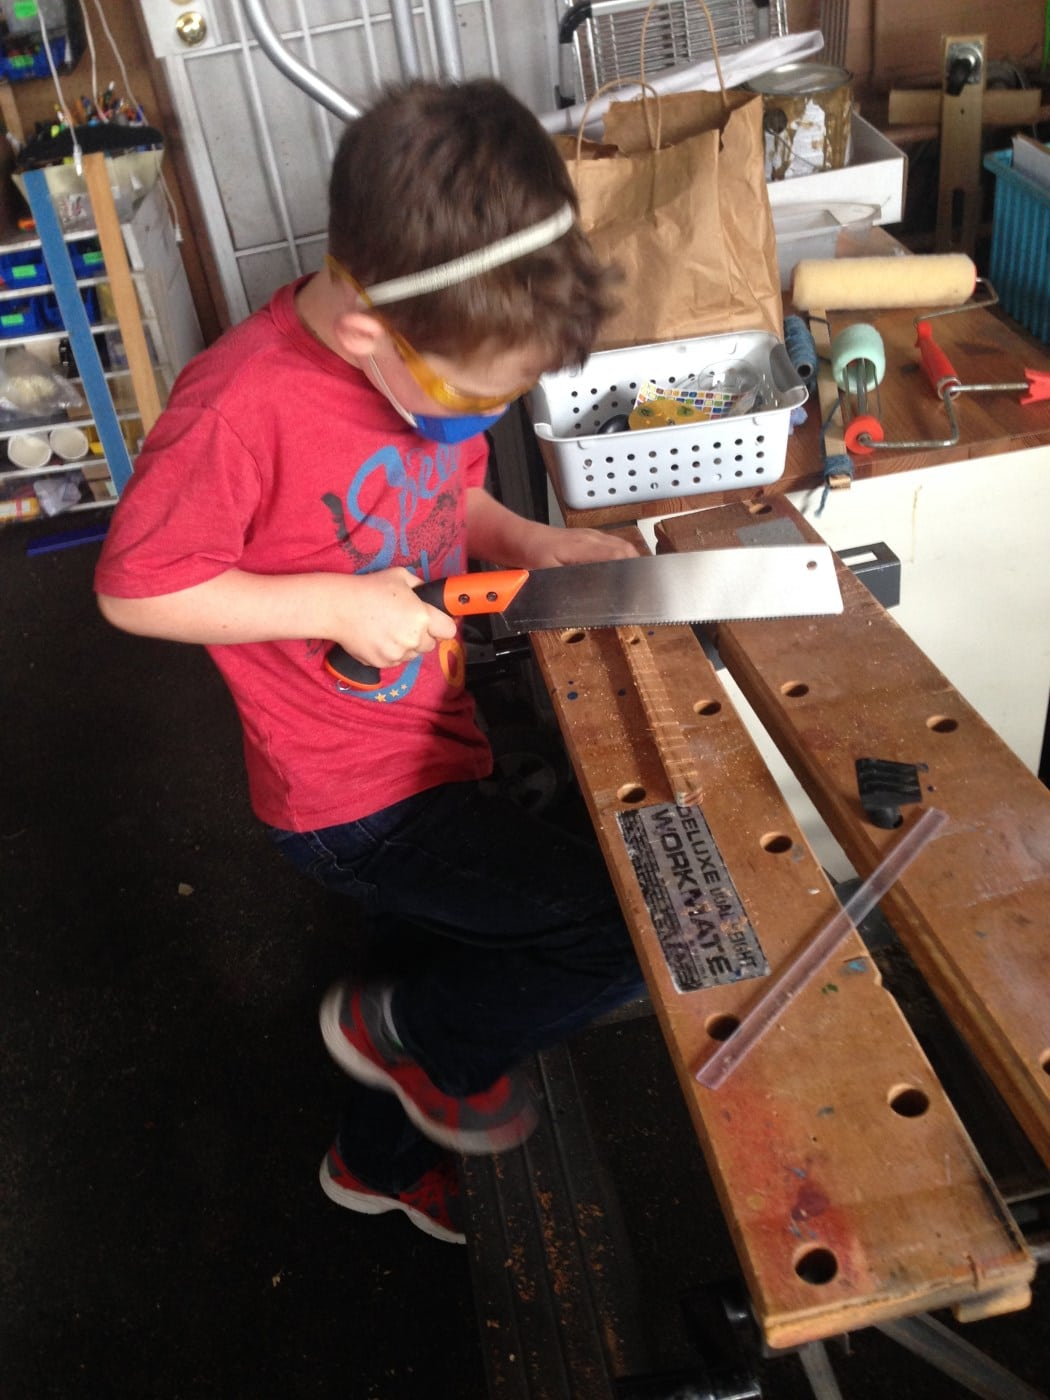 At the Rediscover Center, kids build and craft with an ever-changing selection of reclaimed materials. PHOTO BY ERIN MAHONEY HARRIS